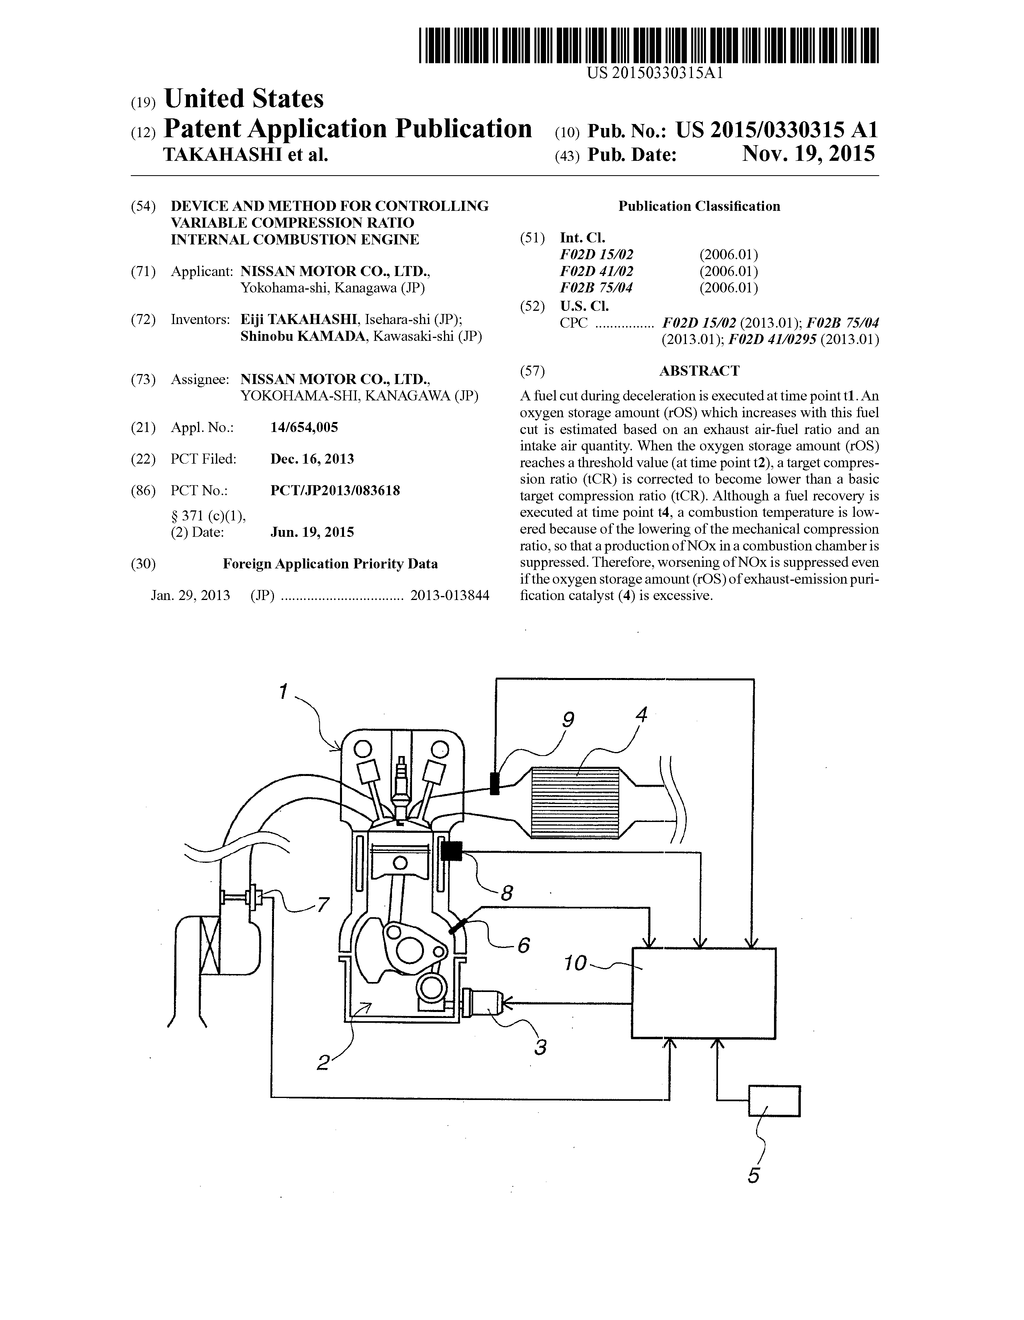 hight resolution of device and method for controlling variable compression ratio internal combustion engine diagram schematic